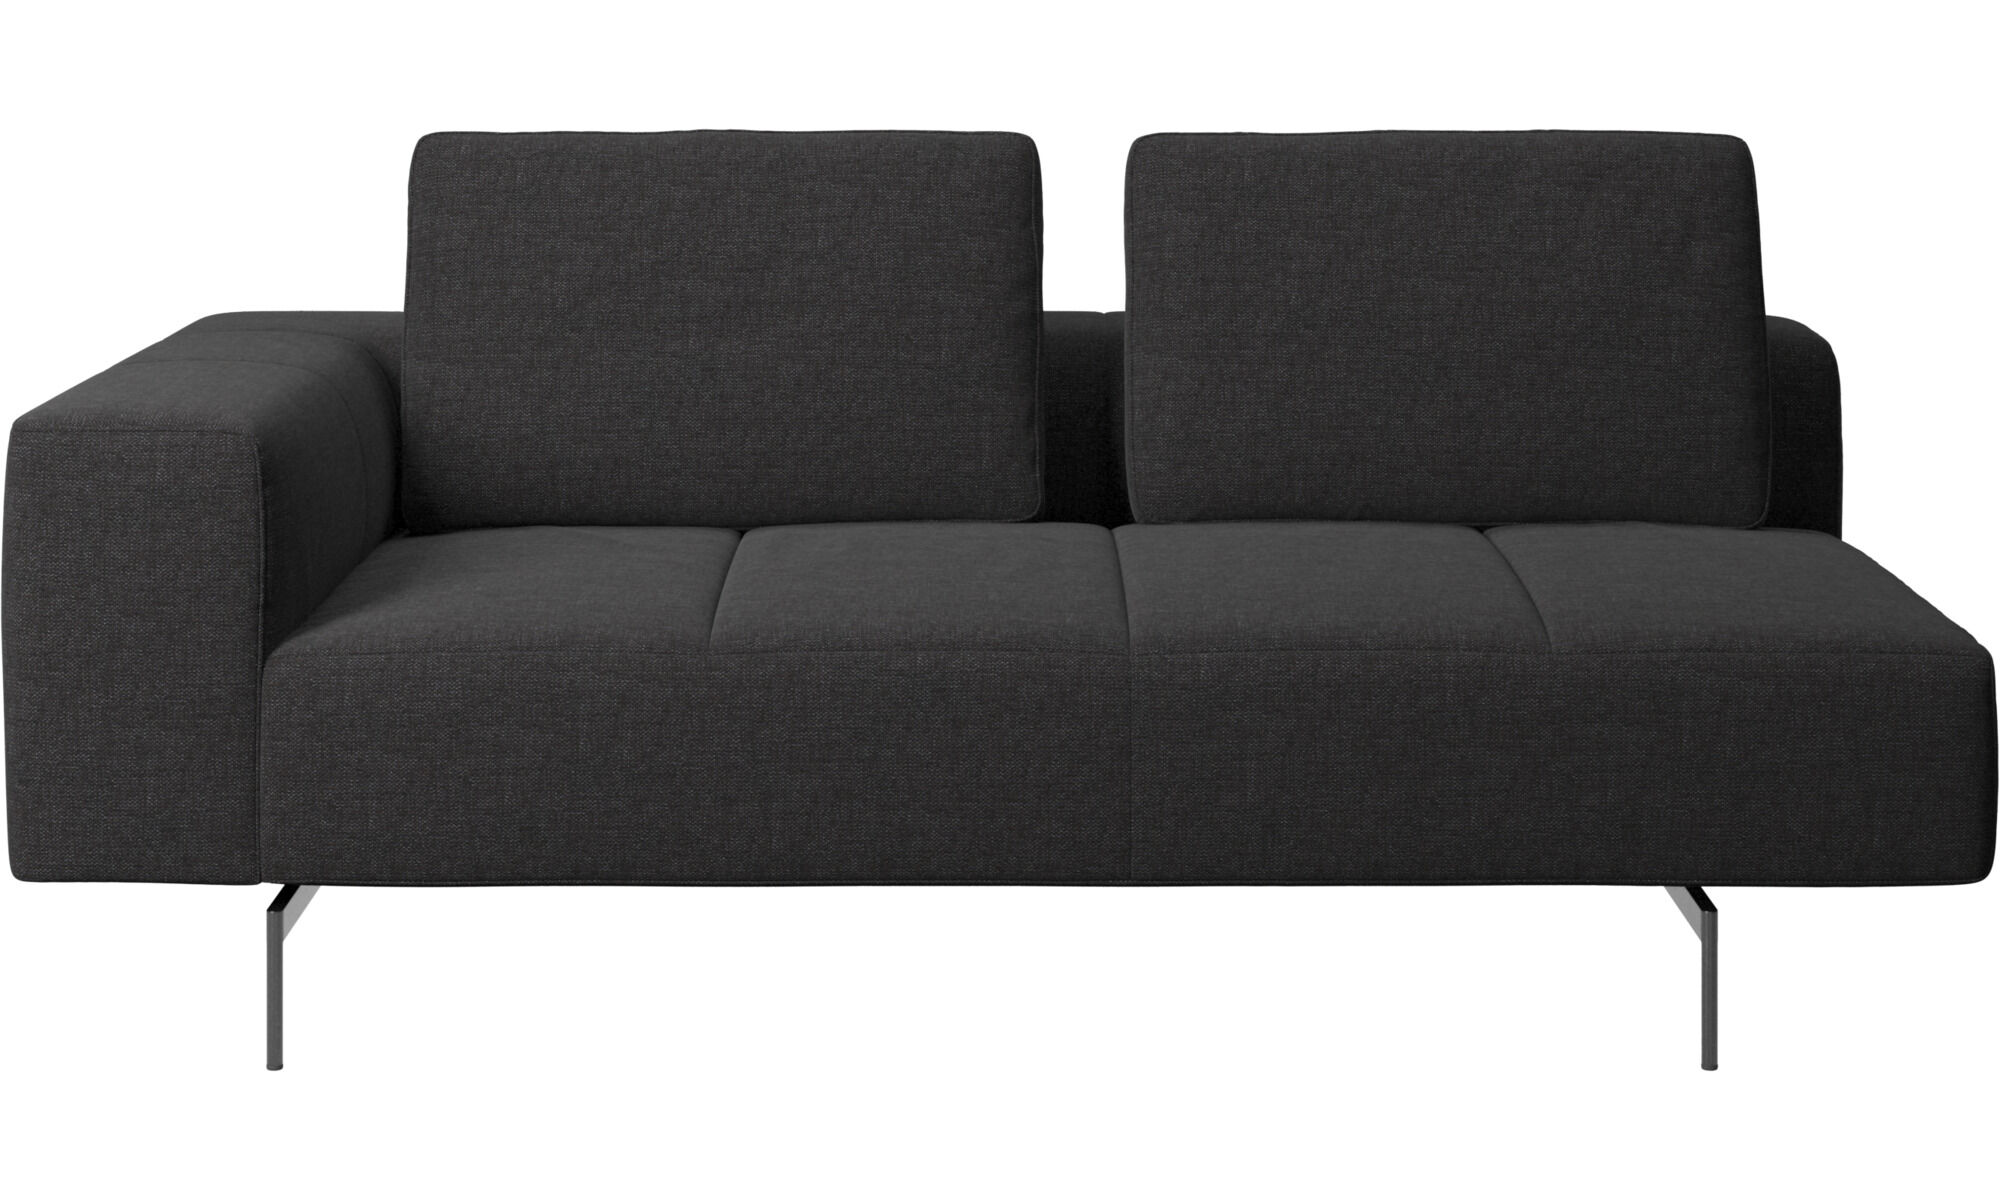 Sofa Beds Amsterdam Sofas From The Boconcept Collection